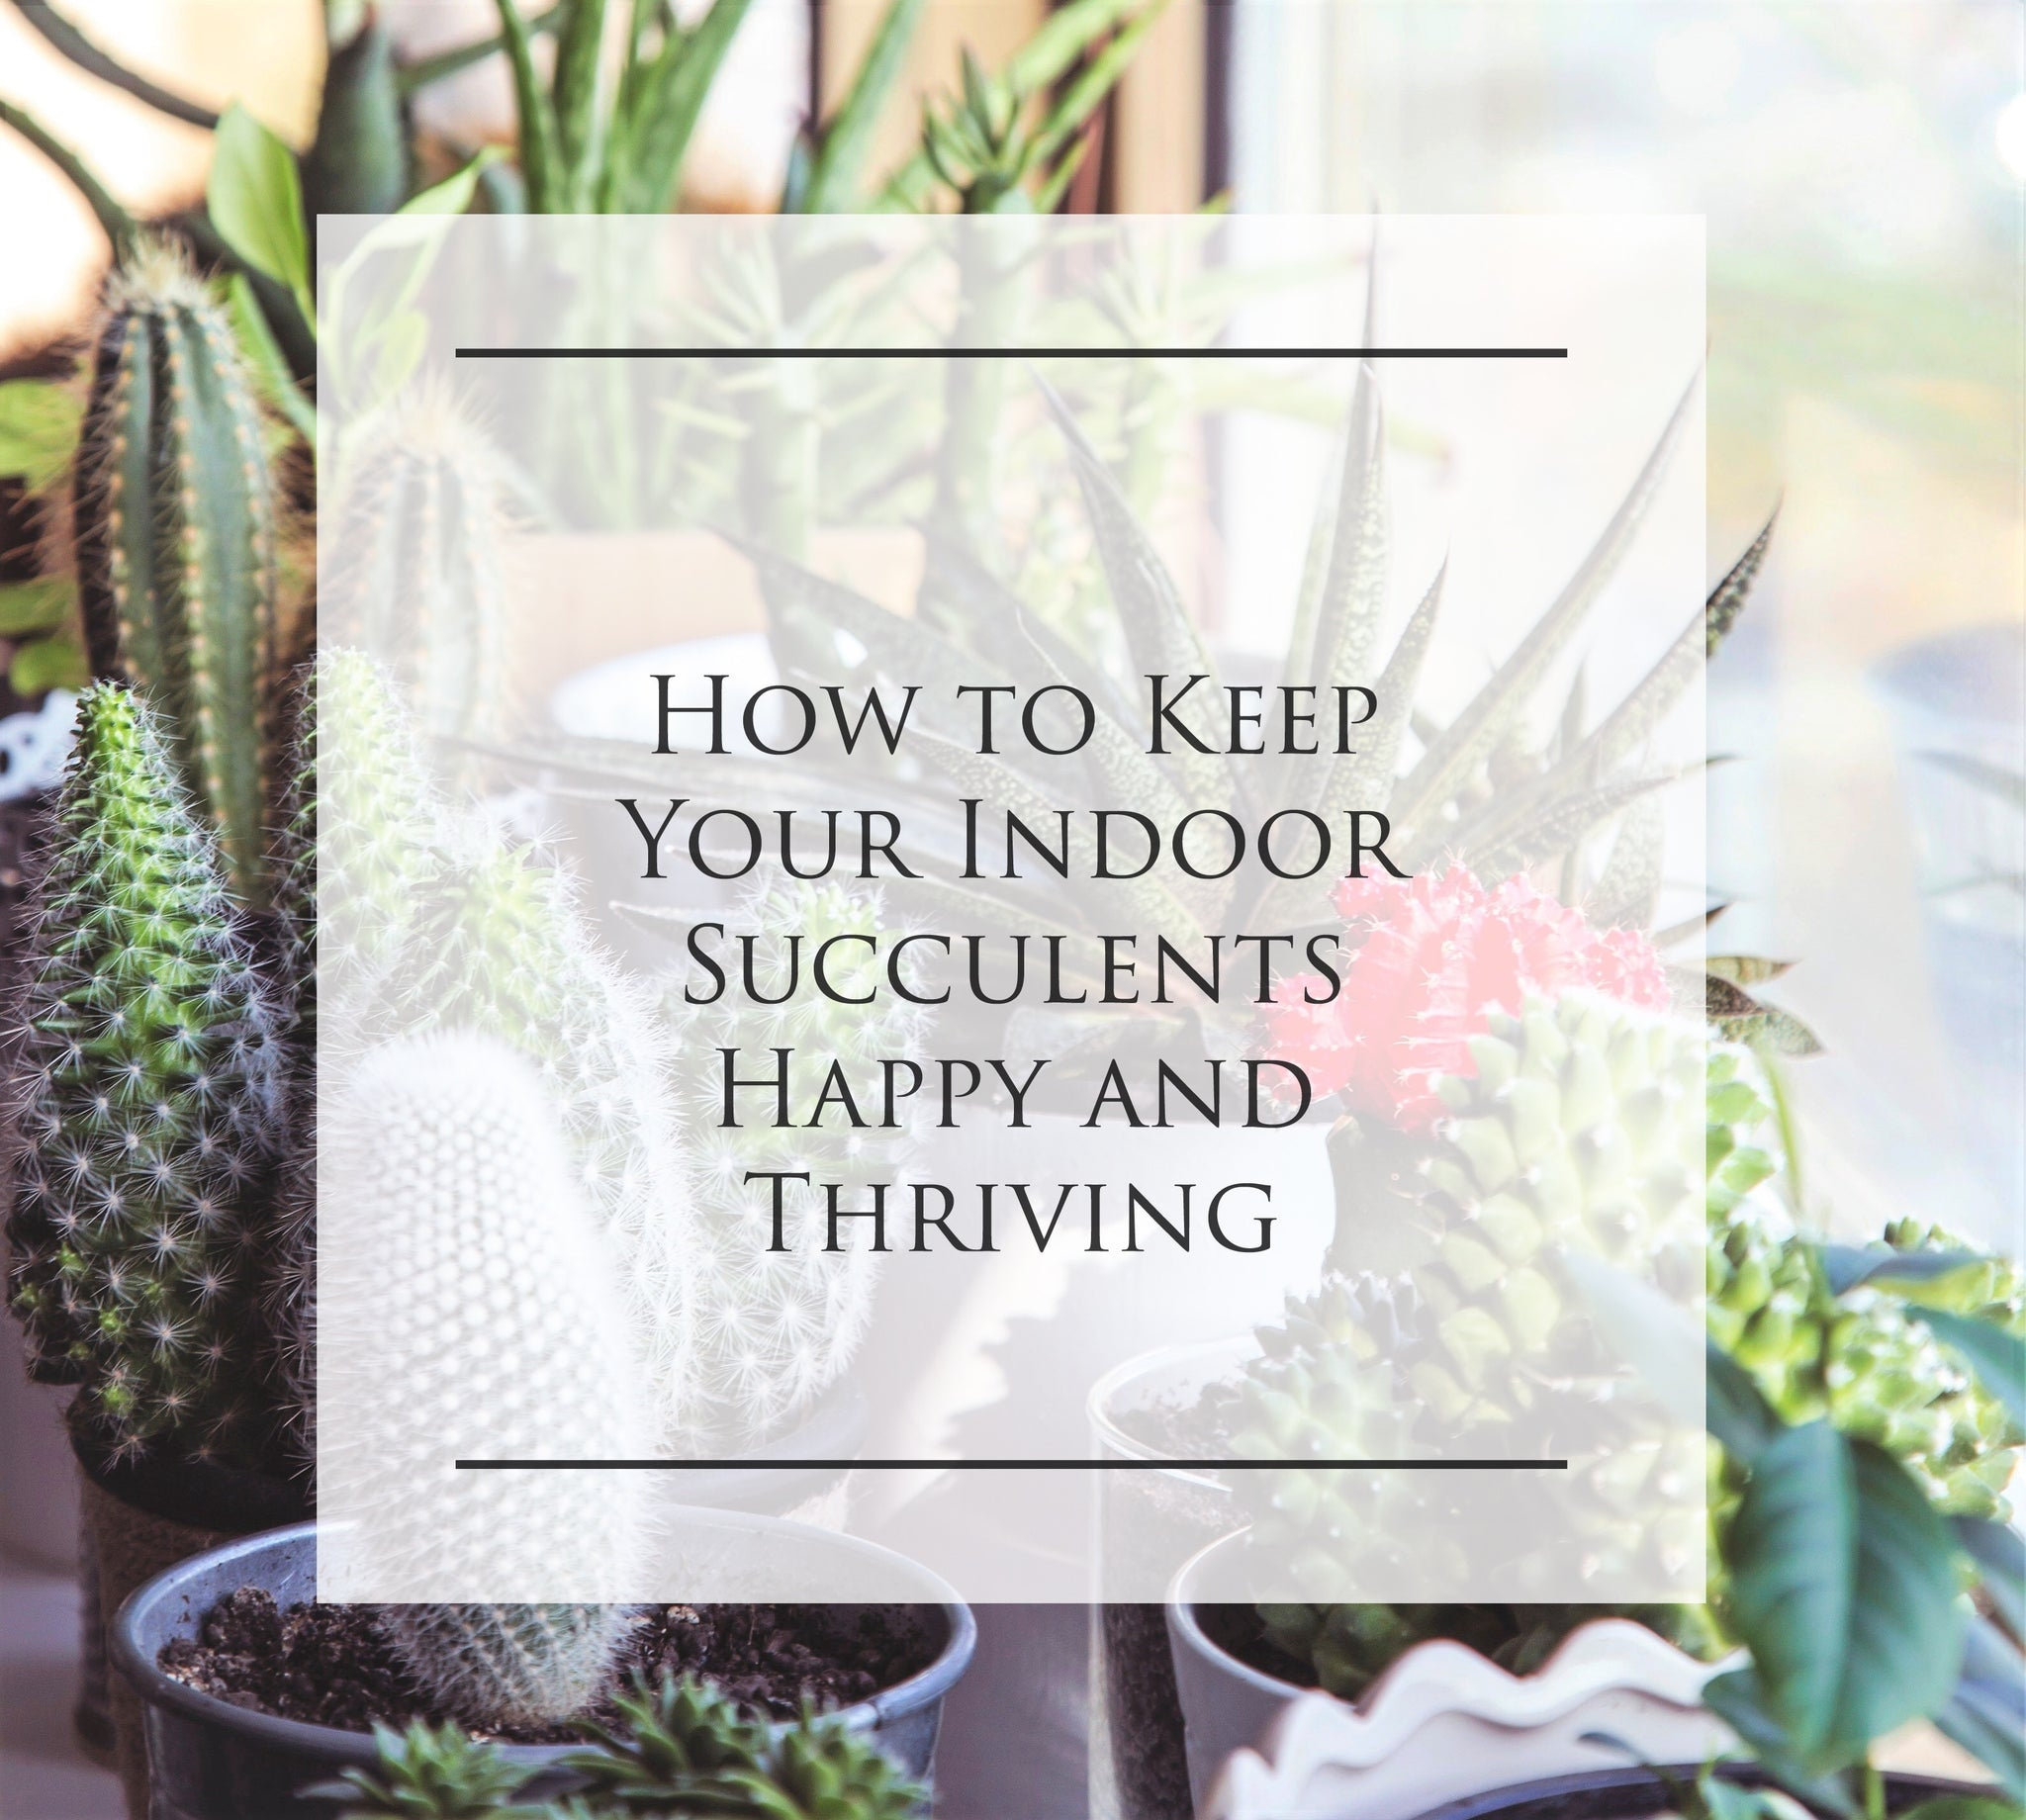 How to Keep Your Indoor Succulents Happy and Thriving